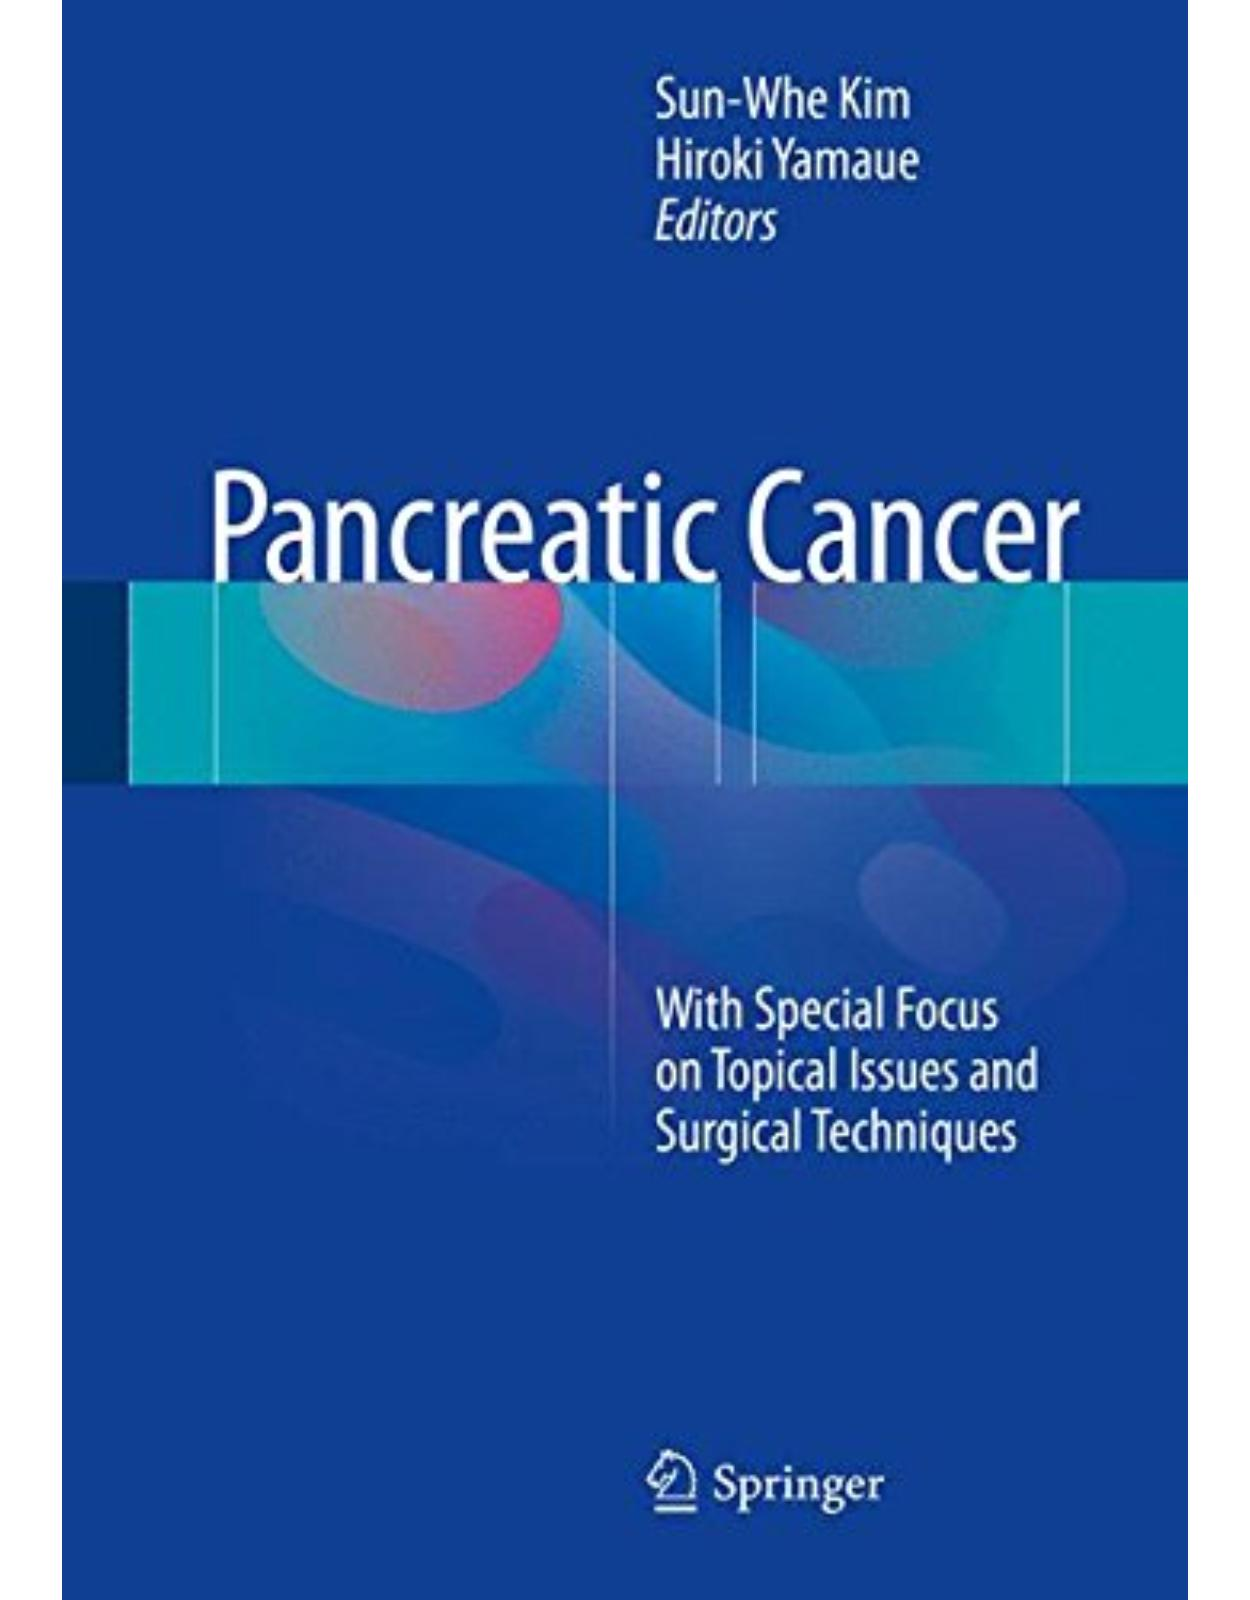 Pancreatic Cancer: With Special Focus on Topical Issues and Surgical Techniques